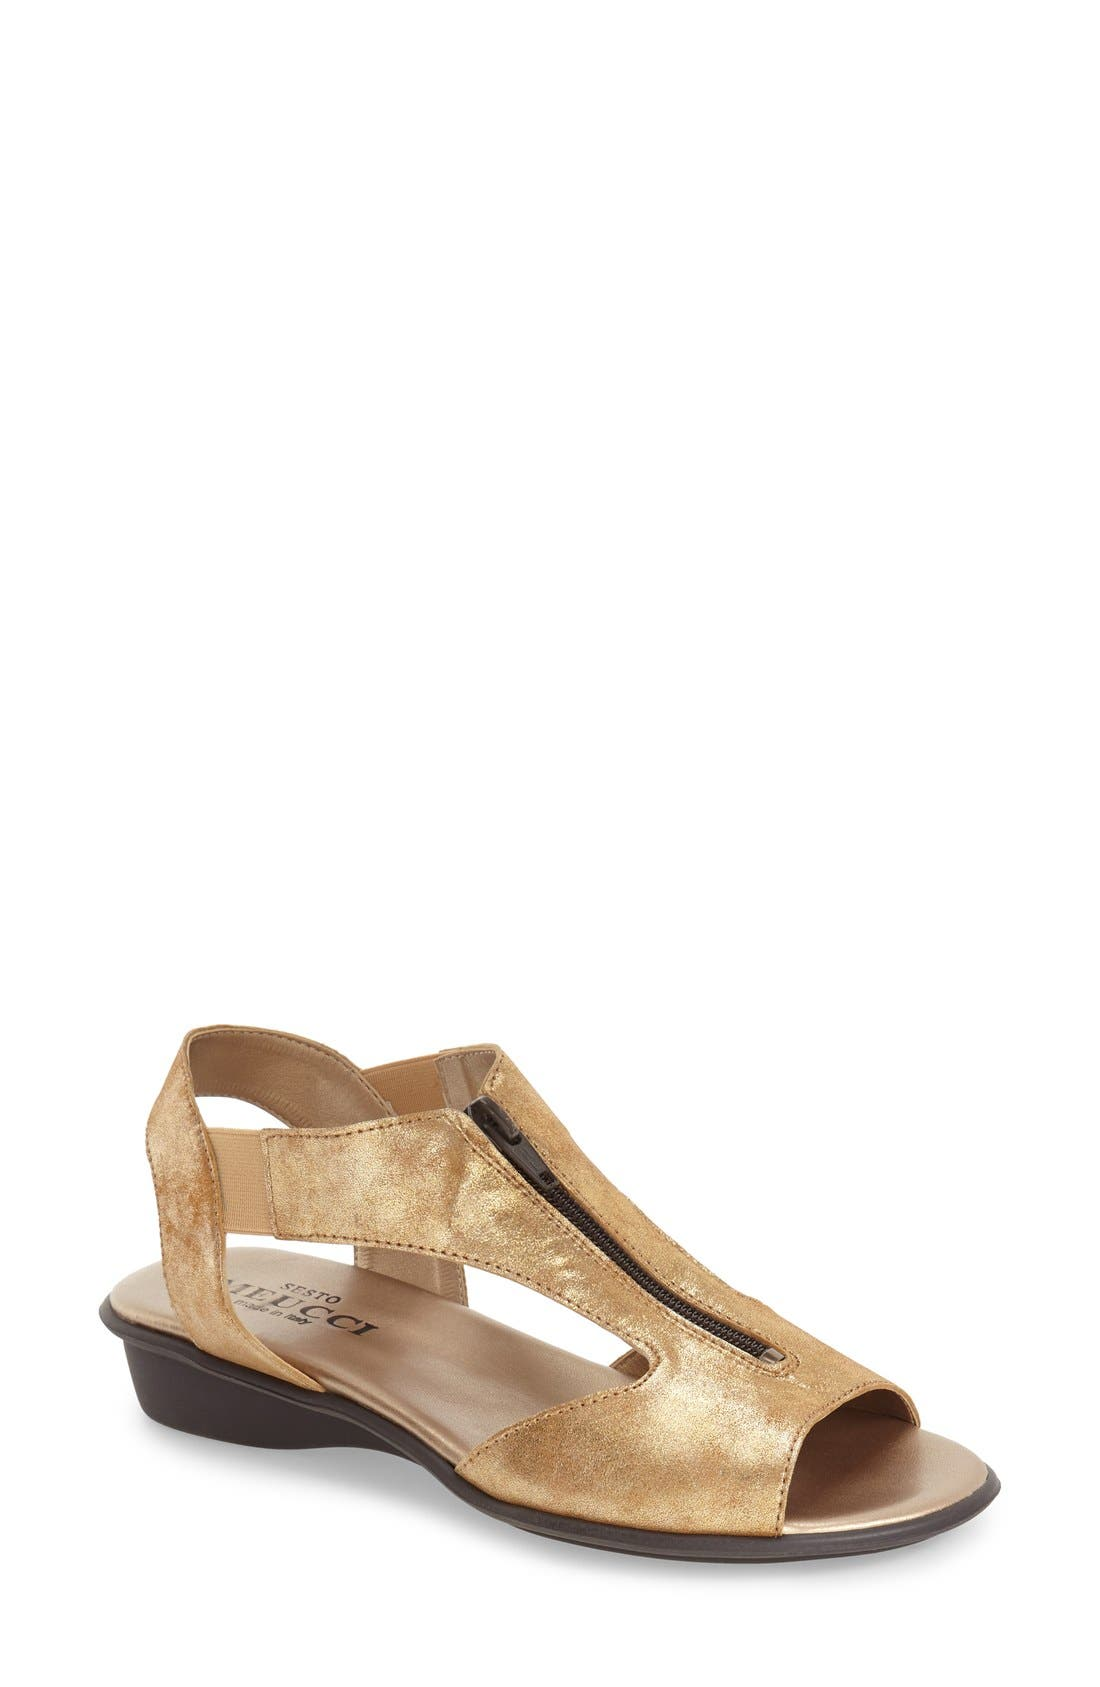 'Euclid' Sandal,                         Main,                         color, BROWN LEATHER